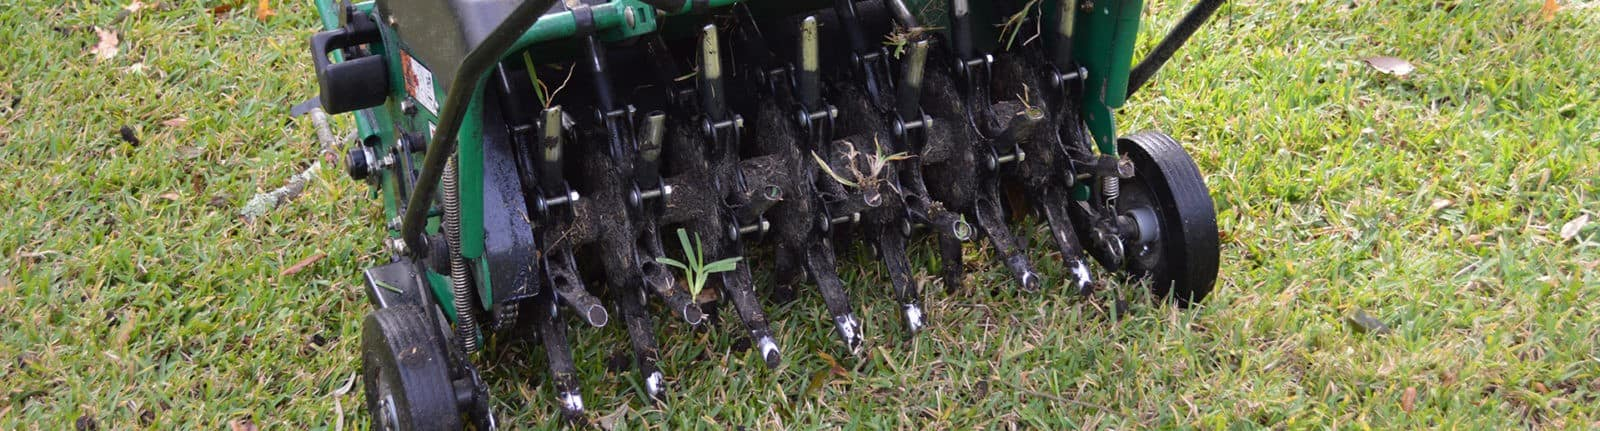 Aeration machine sitting on lawn